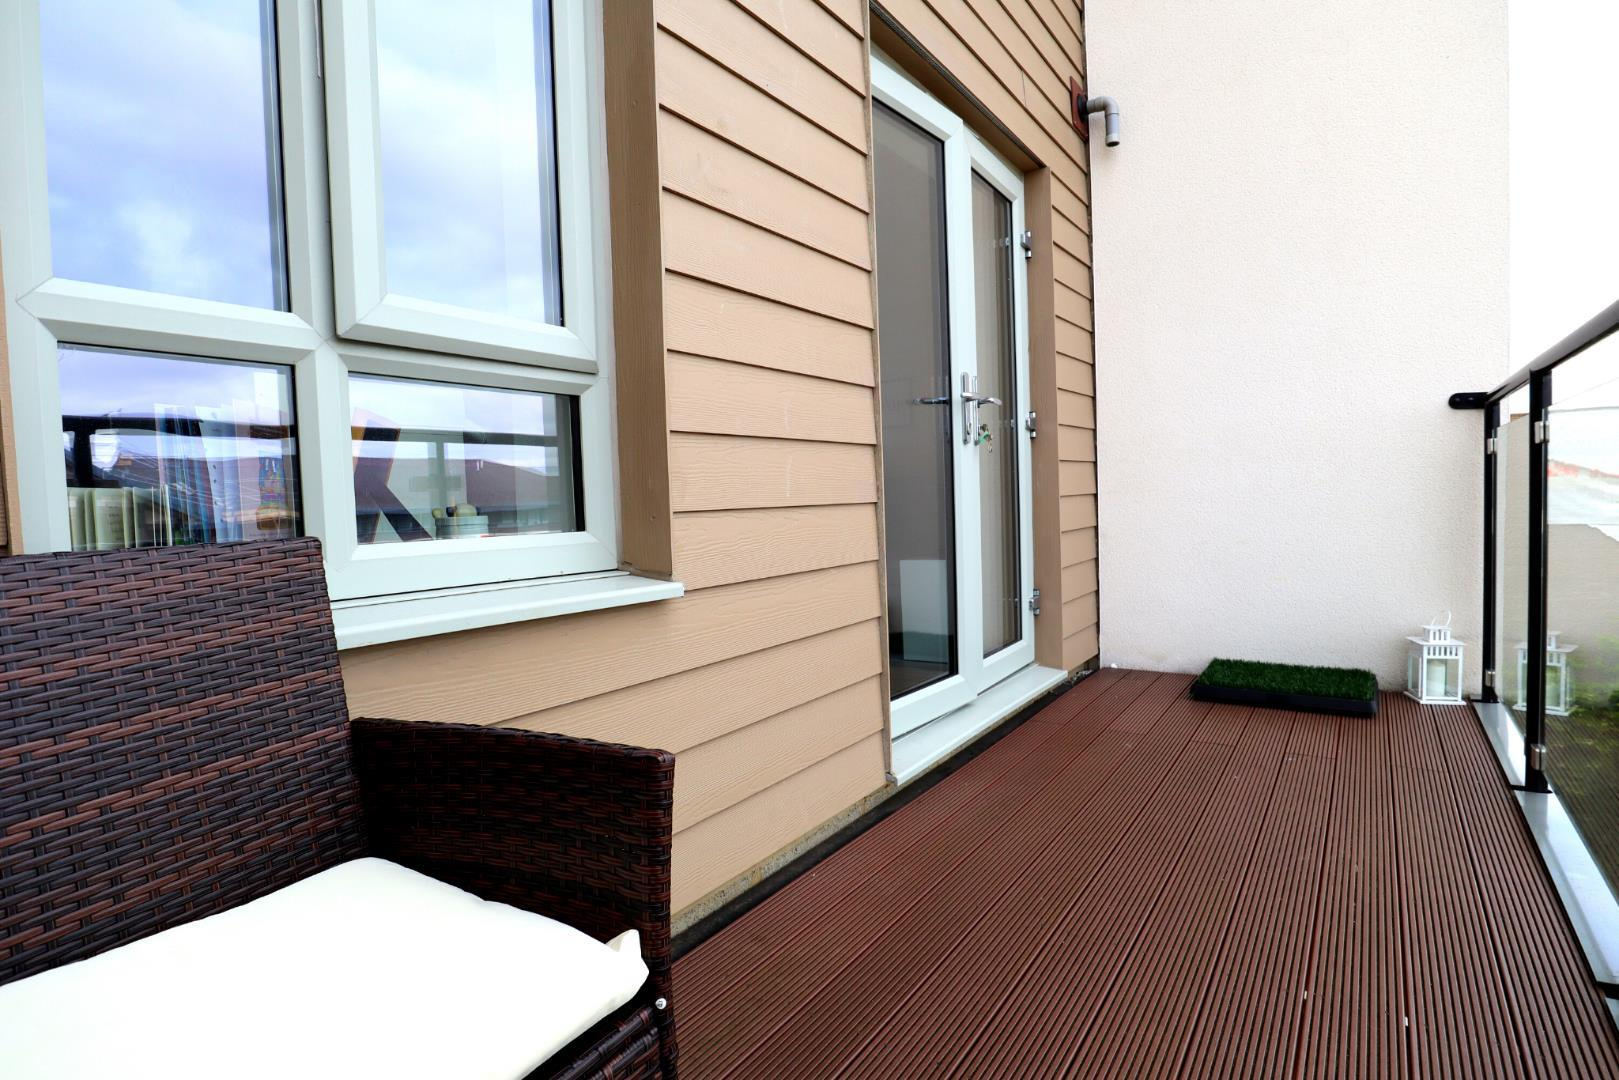 2 bed apartment to rent 5